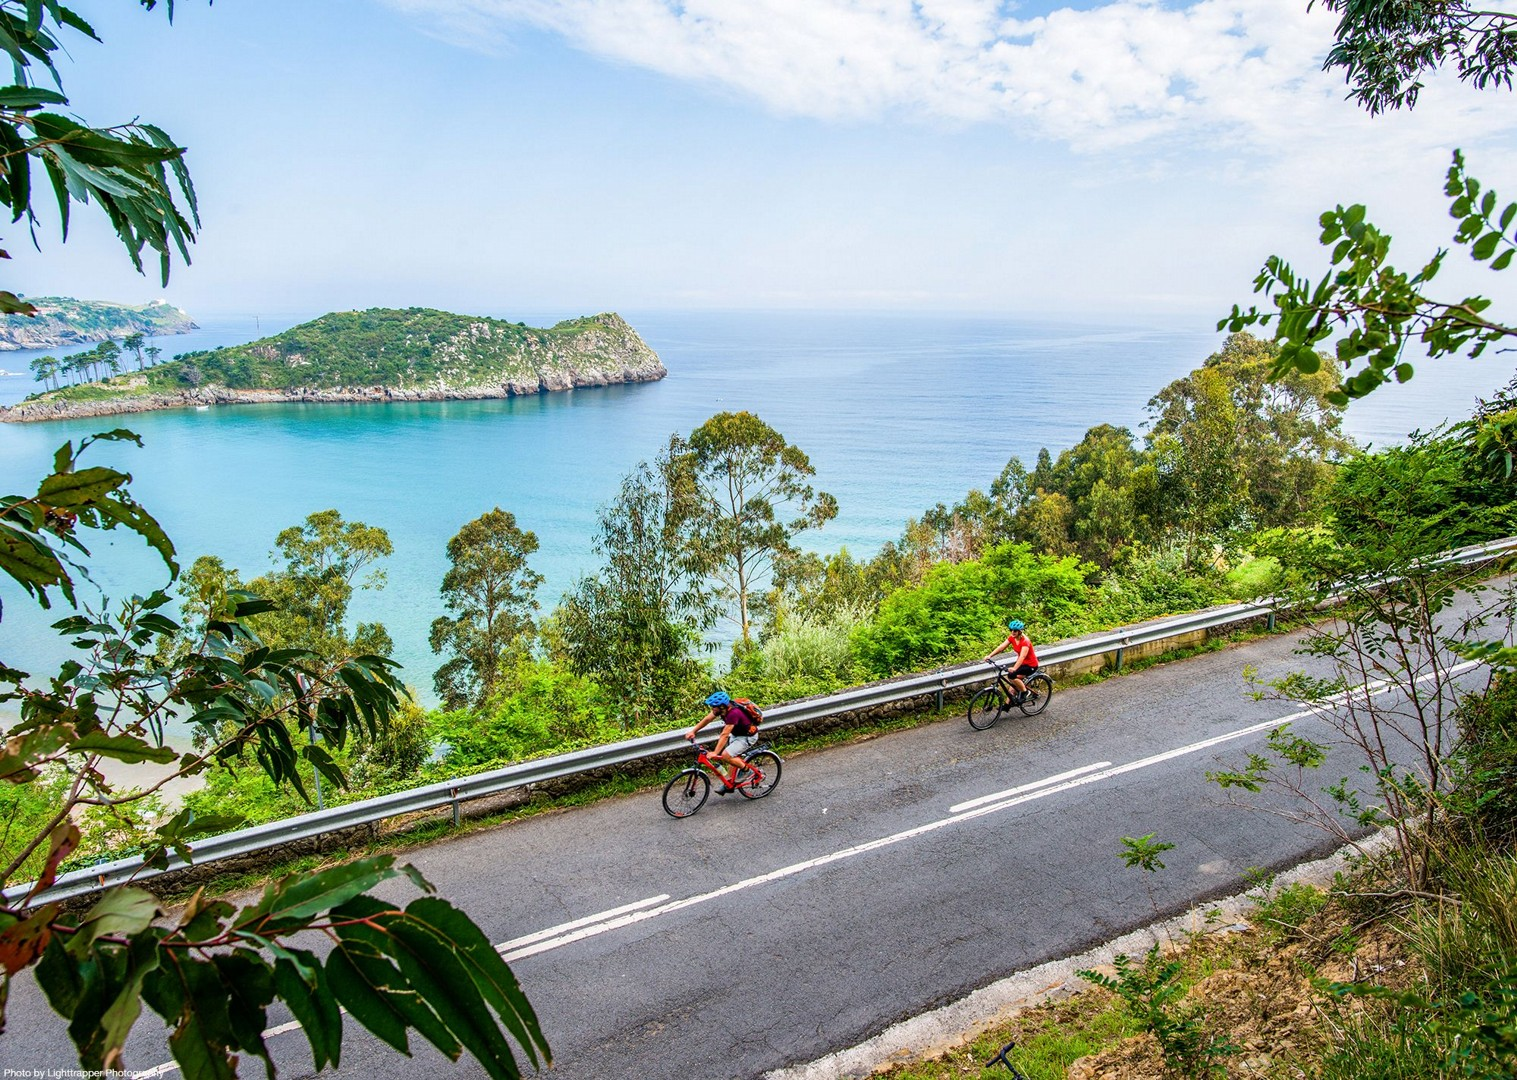 spanish-landscape-spain-self-guided-leisure-cycling-holiday.jpg - NEW! Spain - Bilbao to San Sebastian - Leisure Cycling